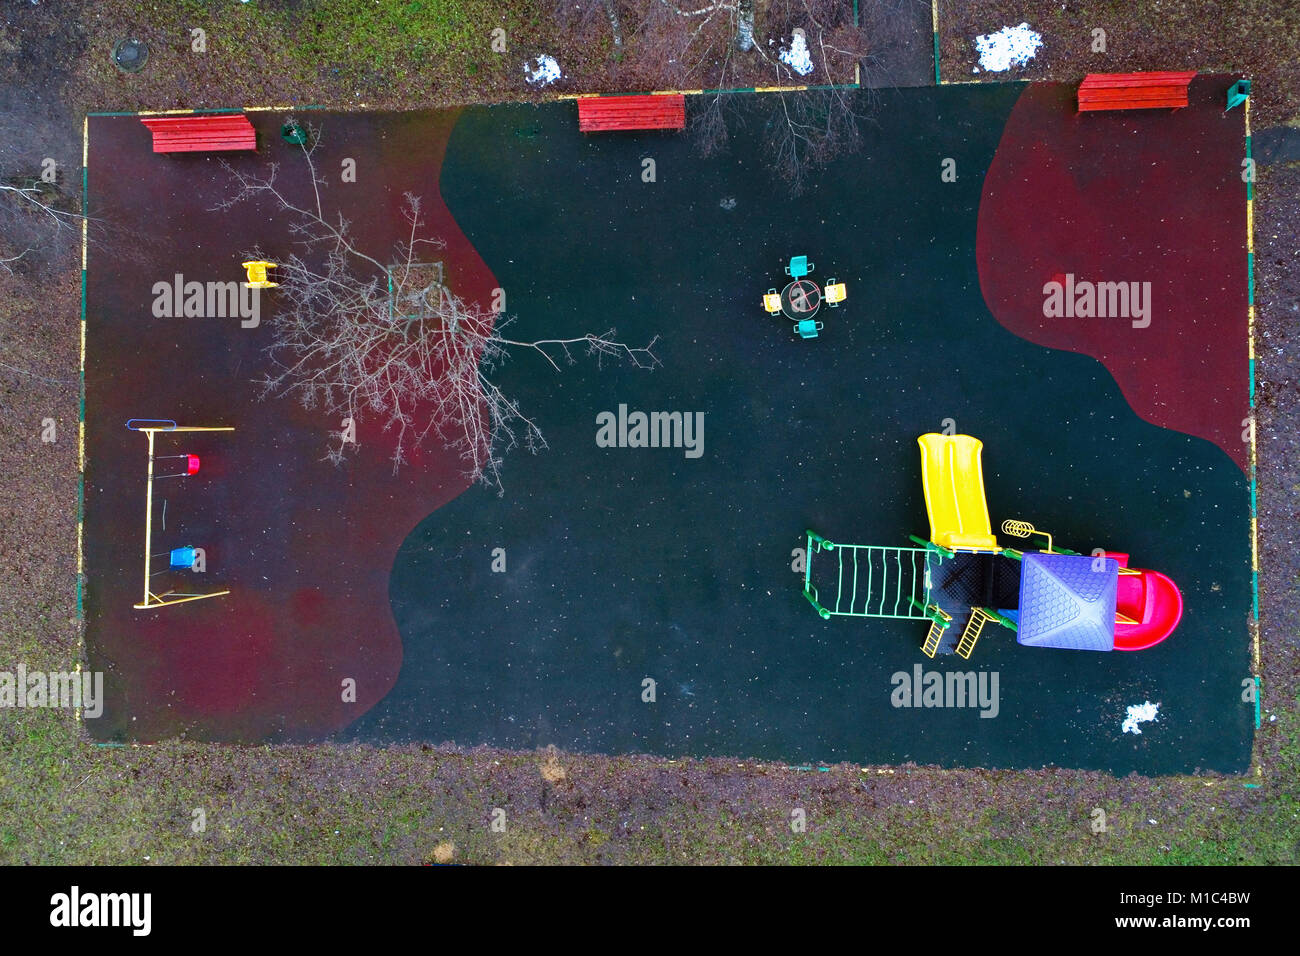 View of the playground from the top. Aerial photography. - Stock Image